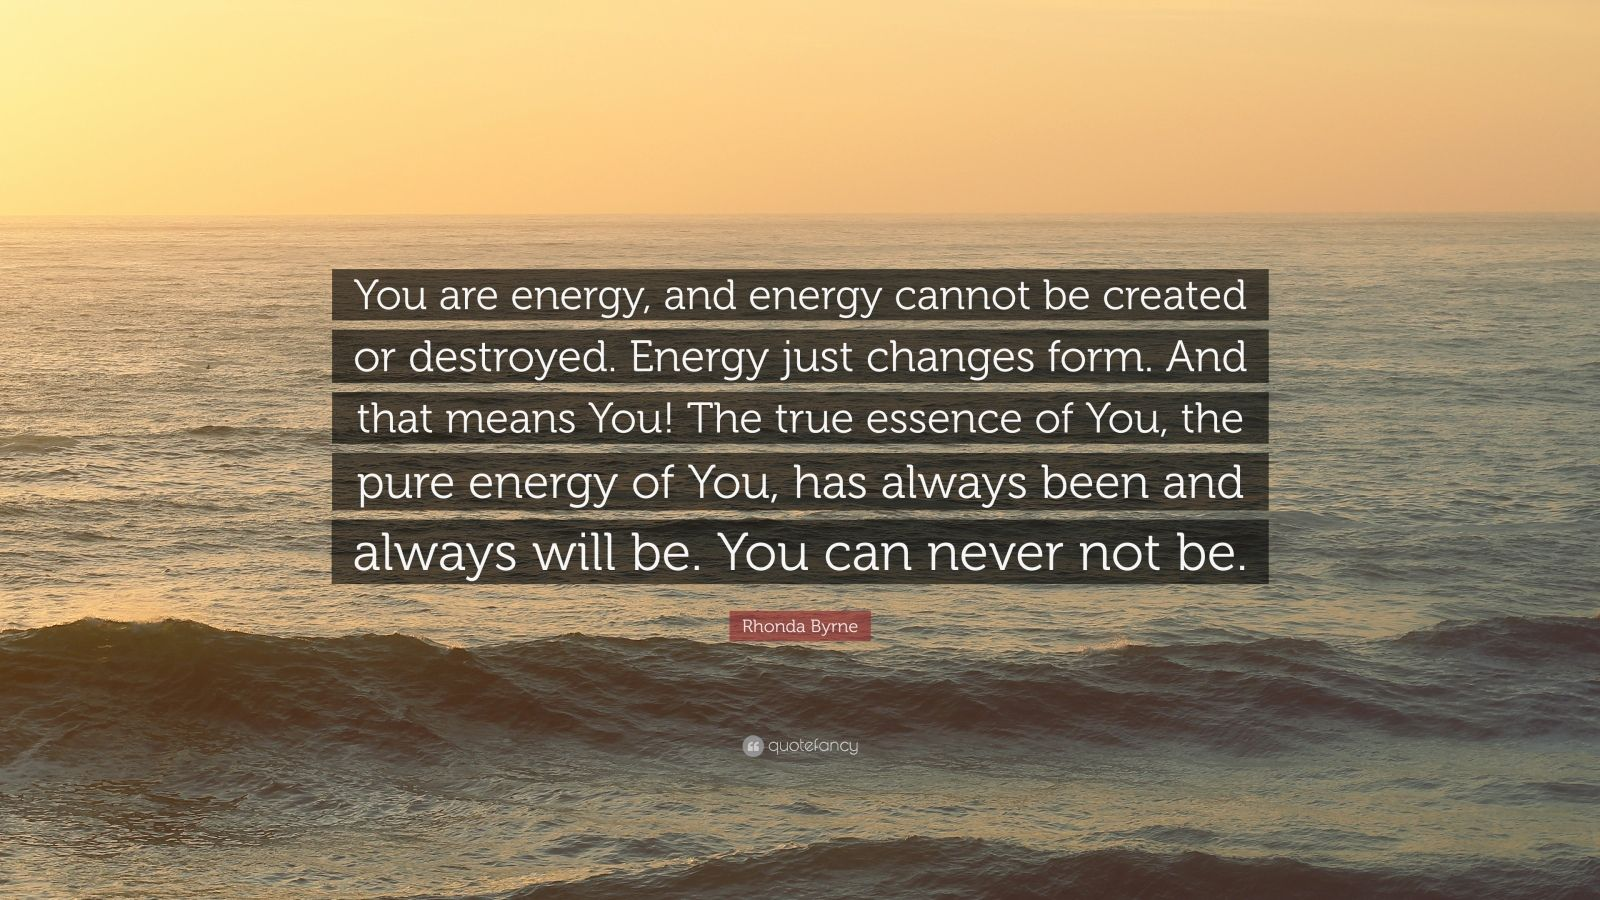 "Rhonda Byrne Quote: ""You are energy, and energy cannot be created or destroyed. Energy just changes form. And that means You! The true essence of You, the pure energy of You, has always been and always will be. You can never not be."""